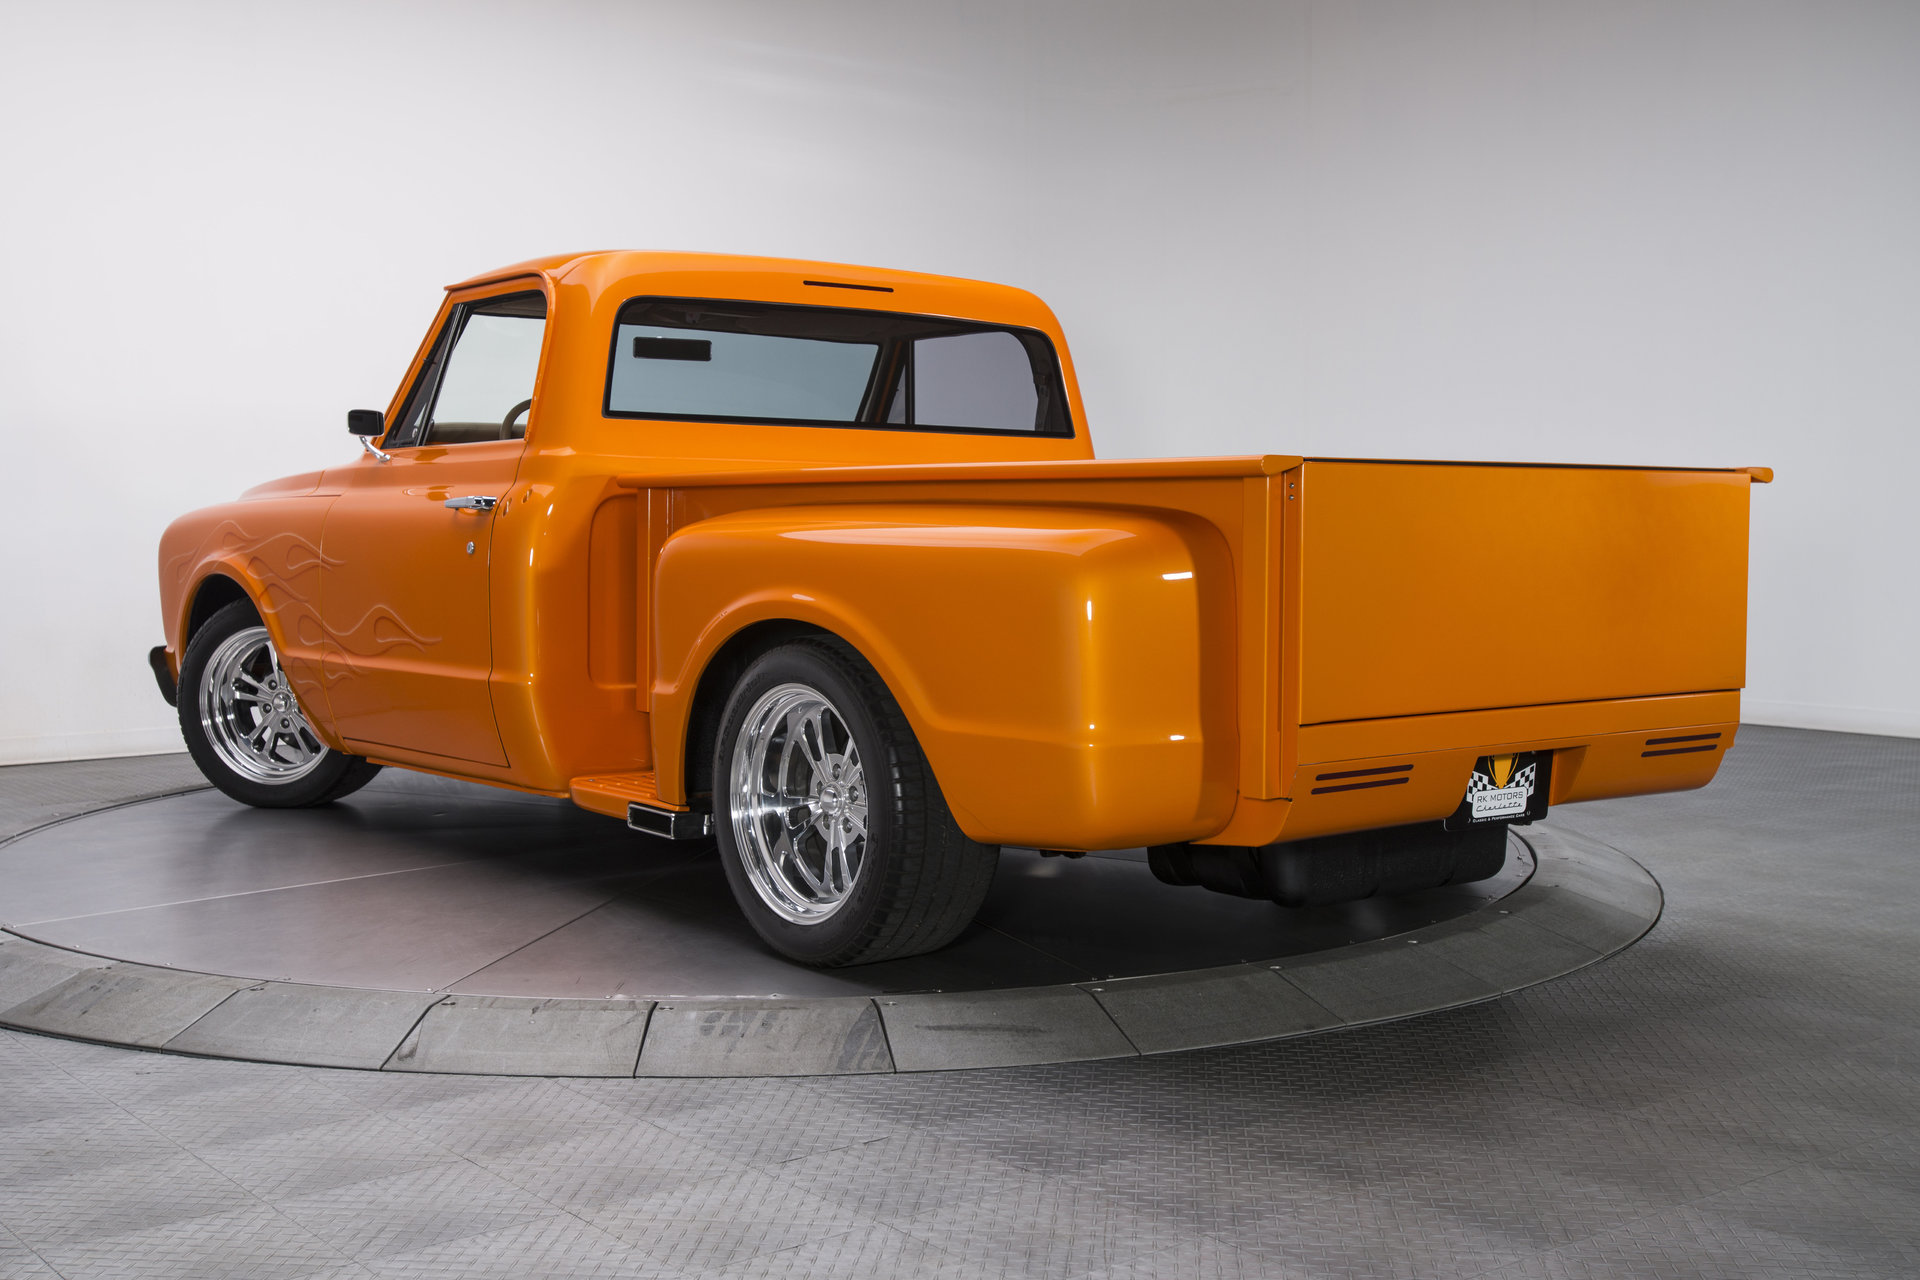 1968 Chevrolet C10 Pickup Truck For Sale 91874 Mcg Chevy